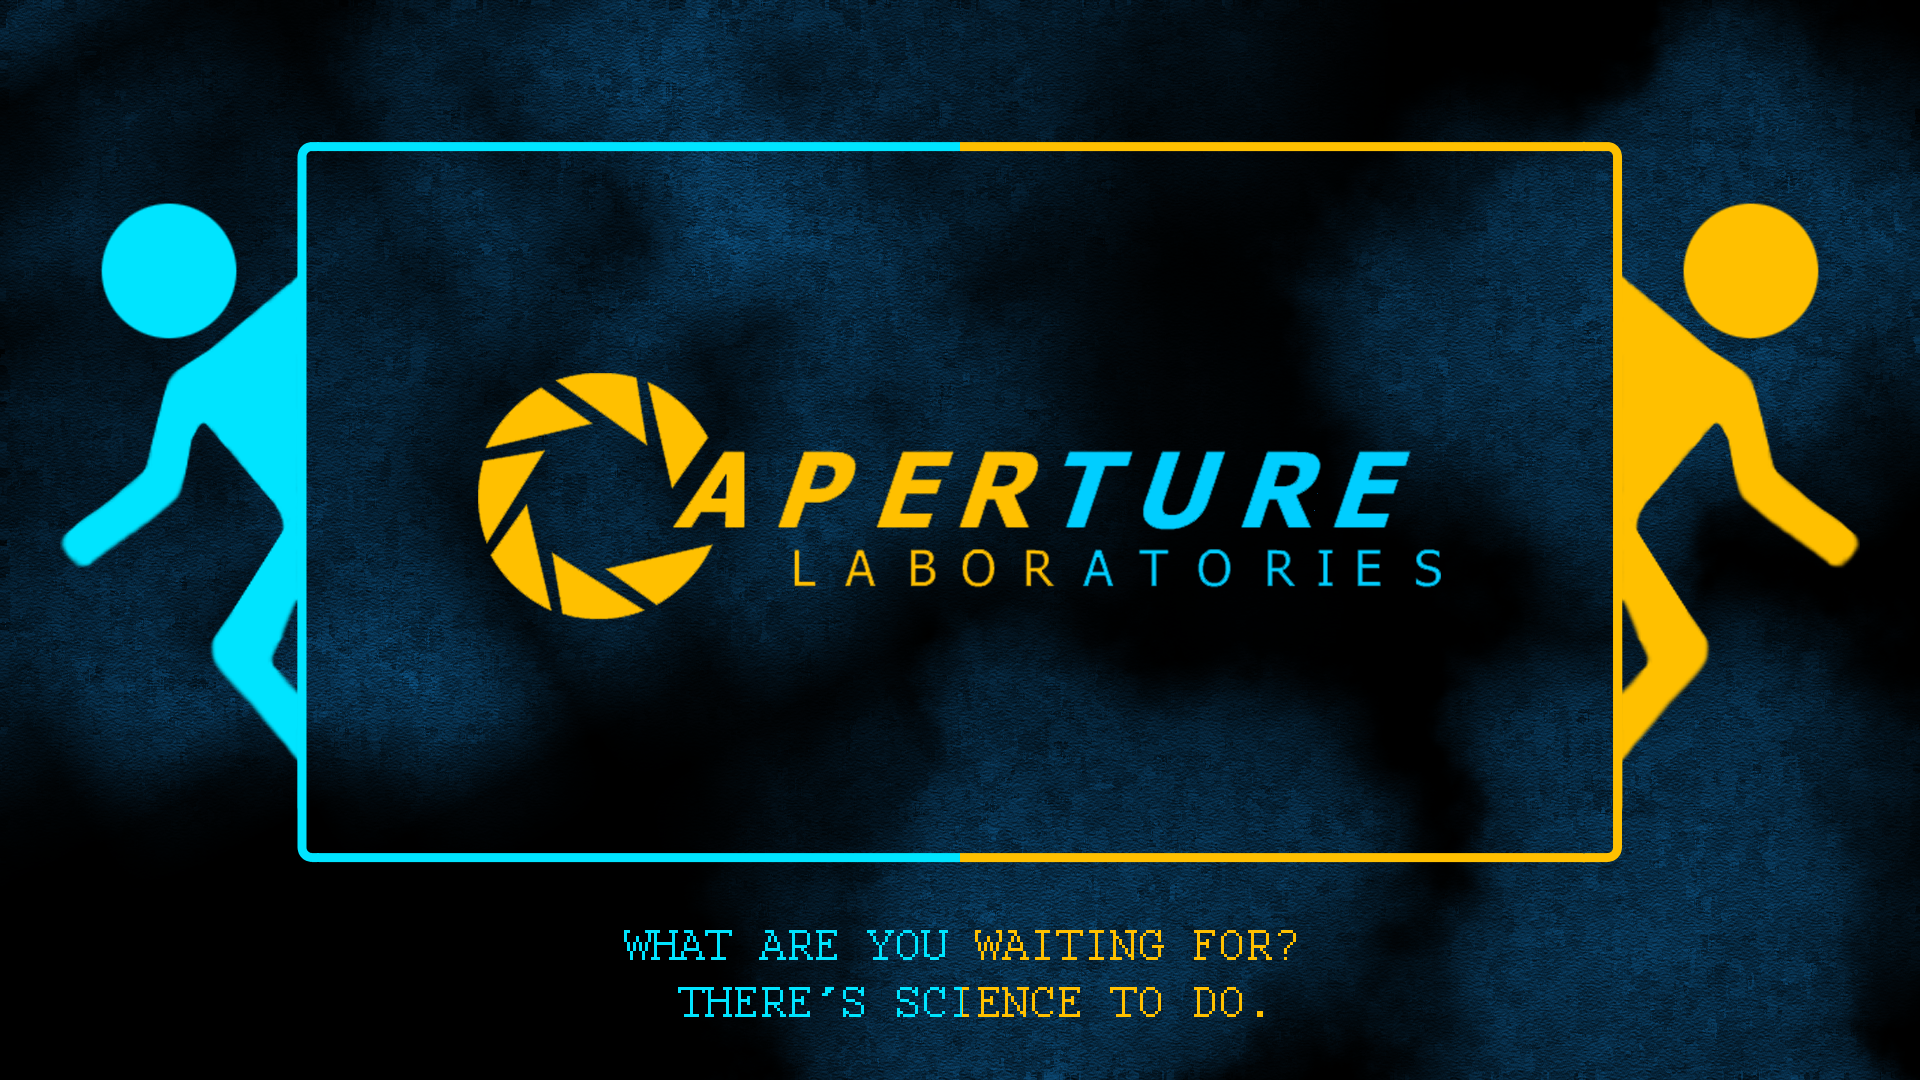 Picture Aperture Science